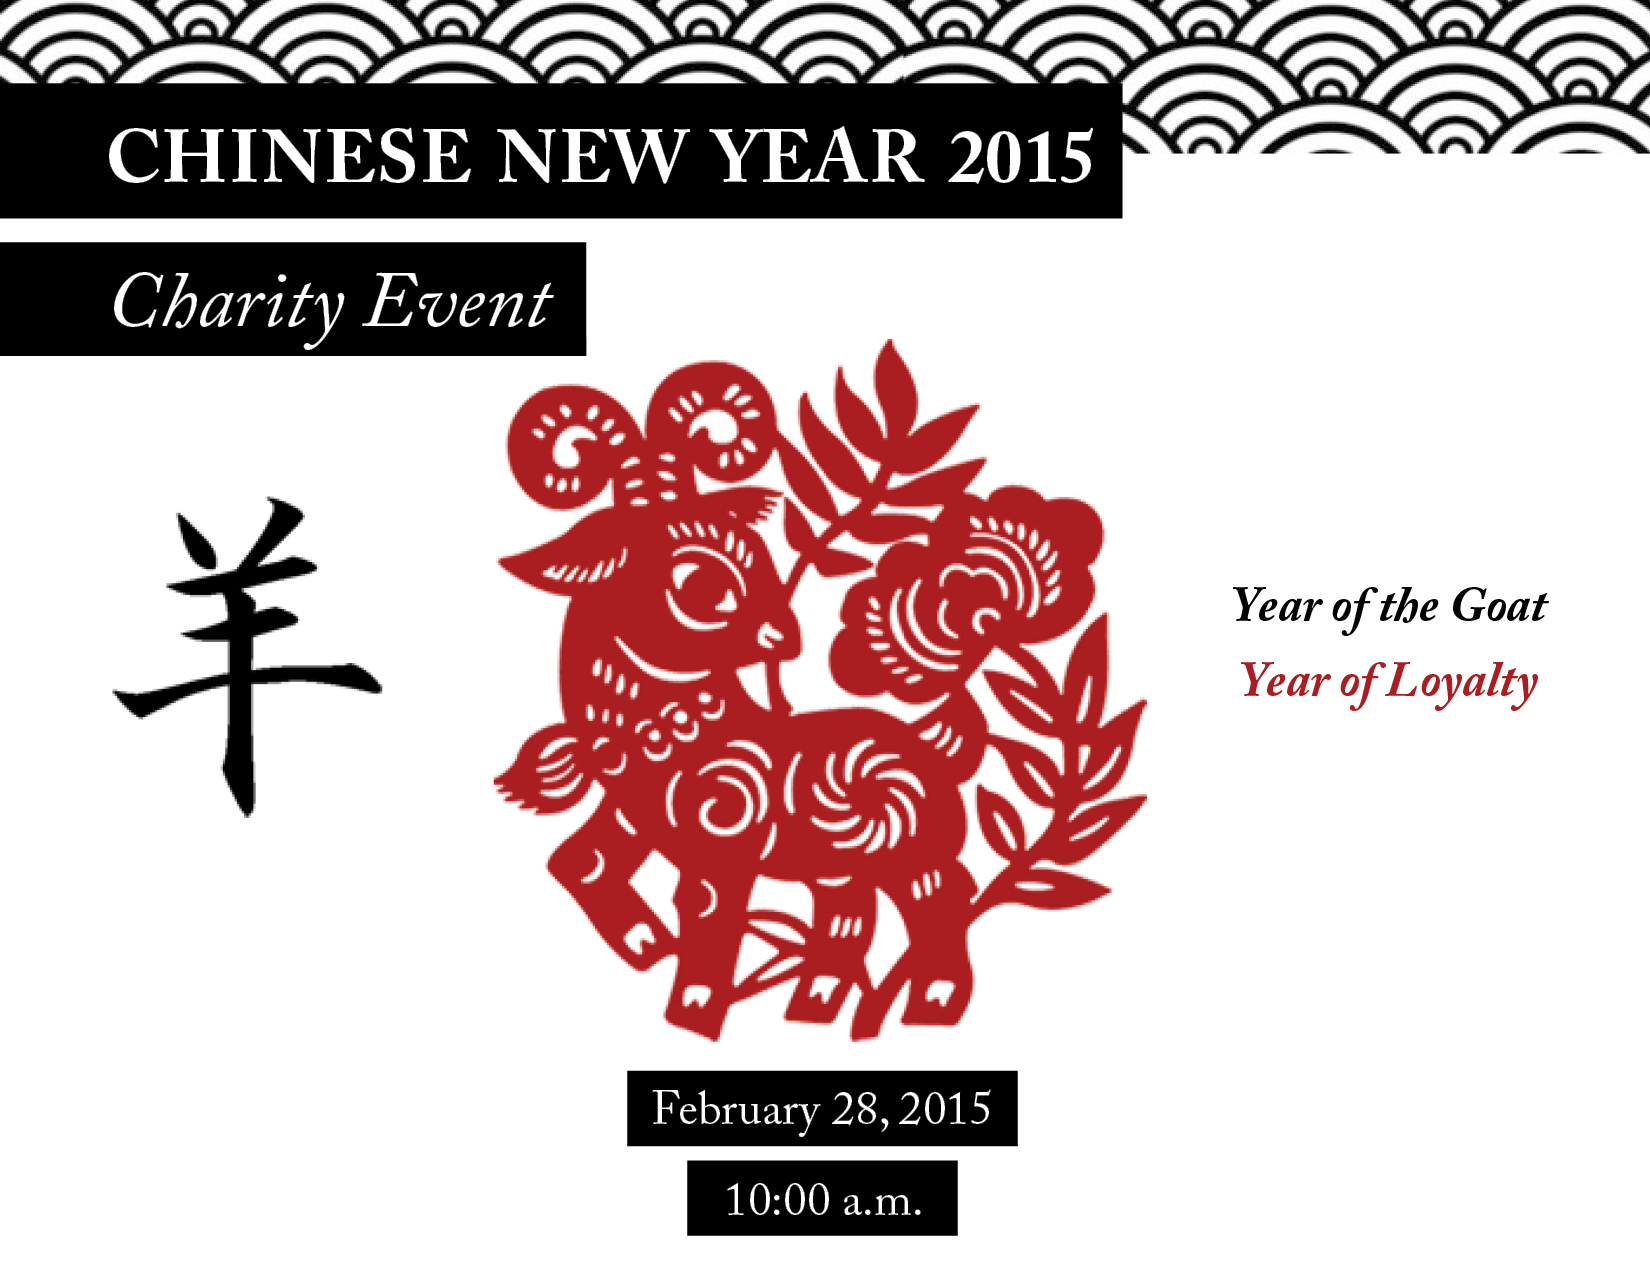 CHINESE_NEW_YEAR_CHARITY_EVENT.jpg